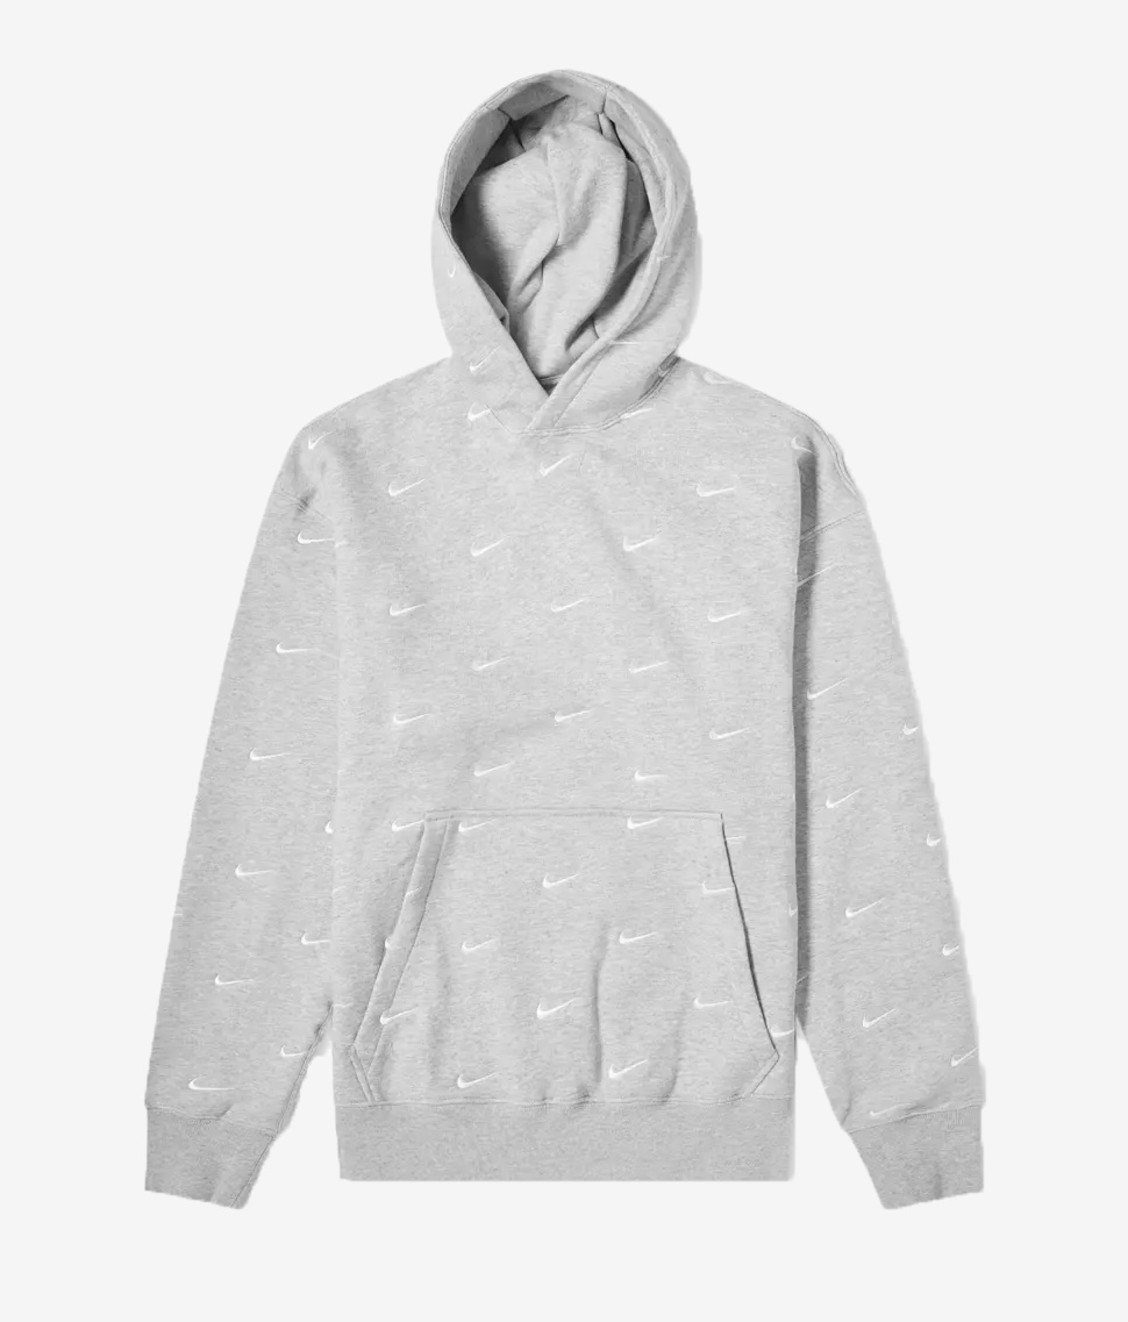 Nike Nike NRG All Over Swoosh Hoodie Grey